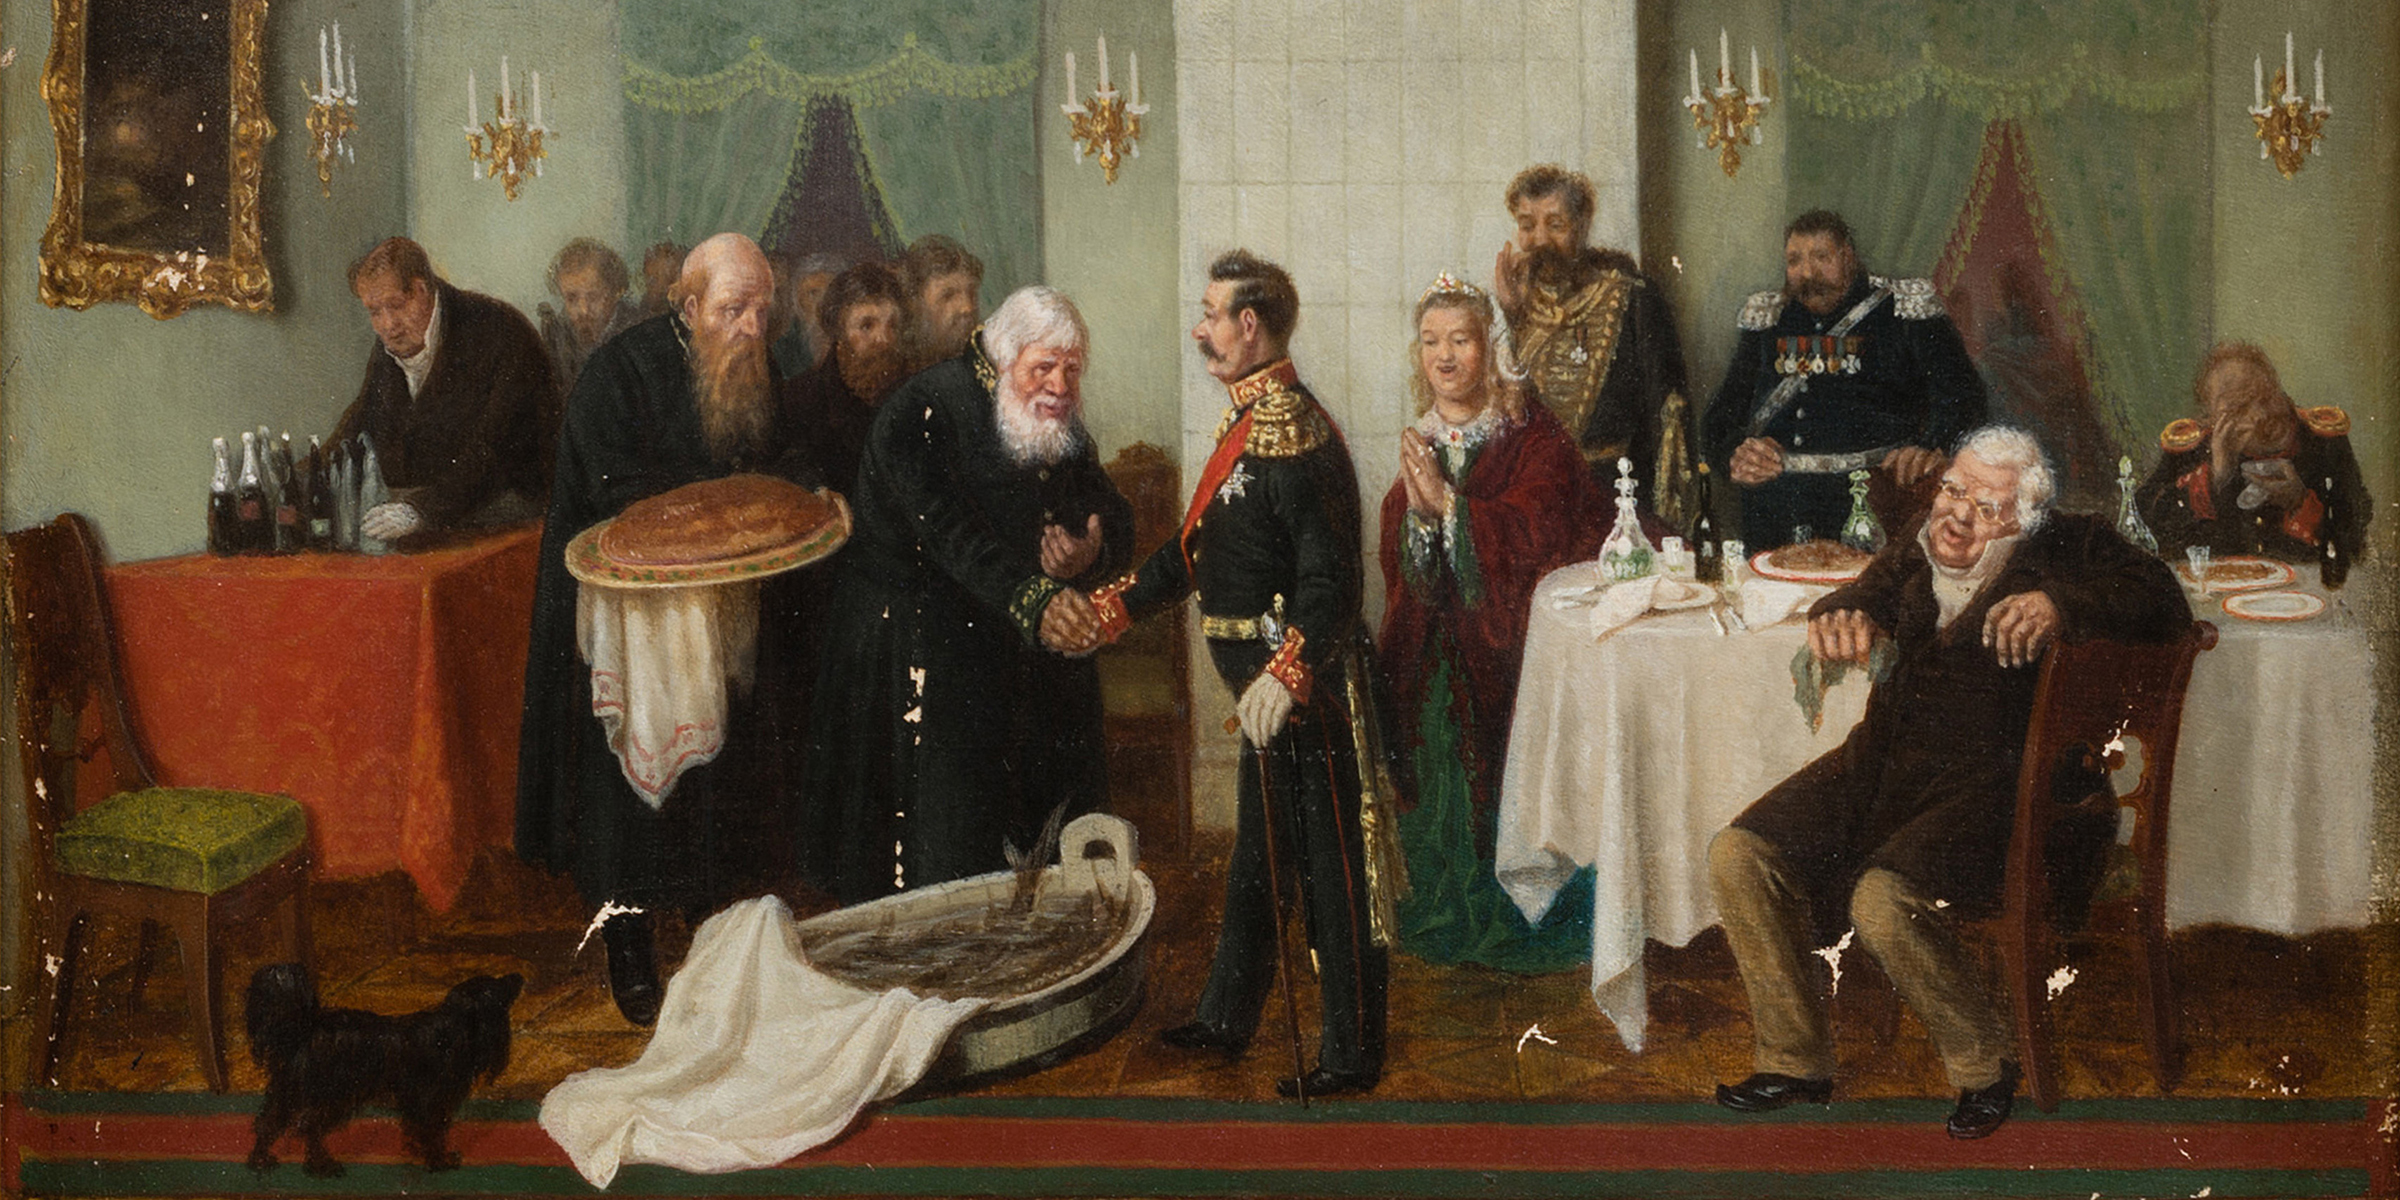 Welcoming the Official (detail), by Leonid Solomatkin, 1867. © HIP / Art Resource, NY.